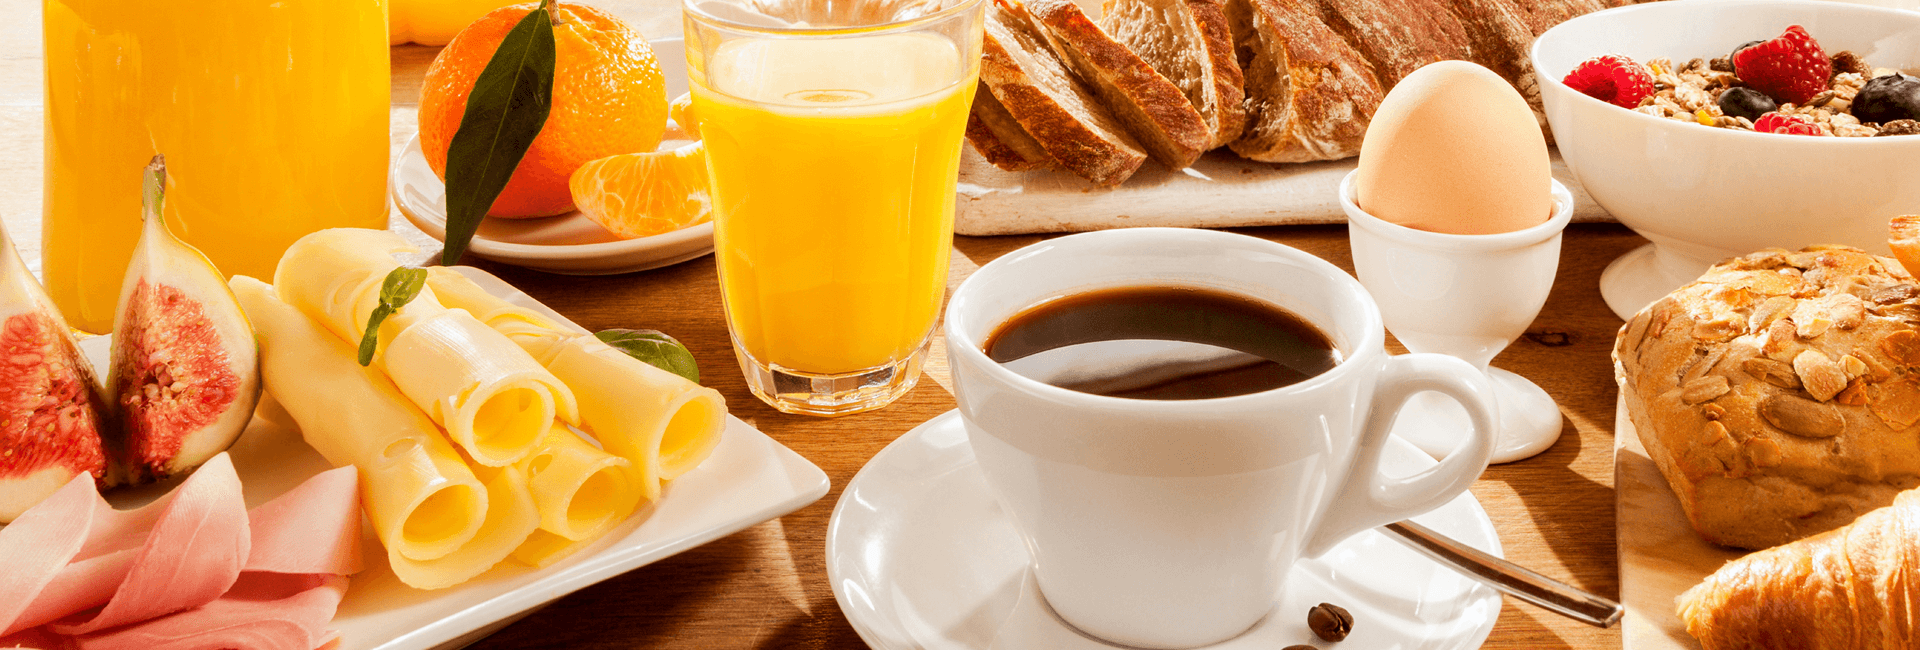 Brunch table with coffee, jus d'orange and an egg - brunch package Gasterij 't Karrewiel